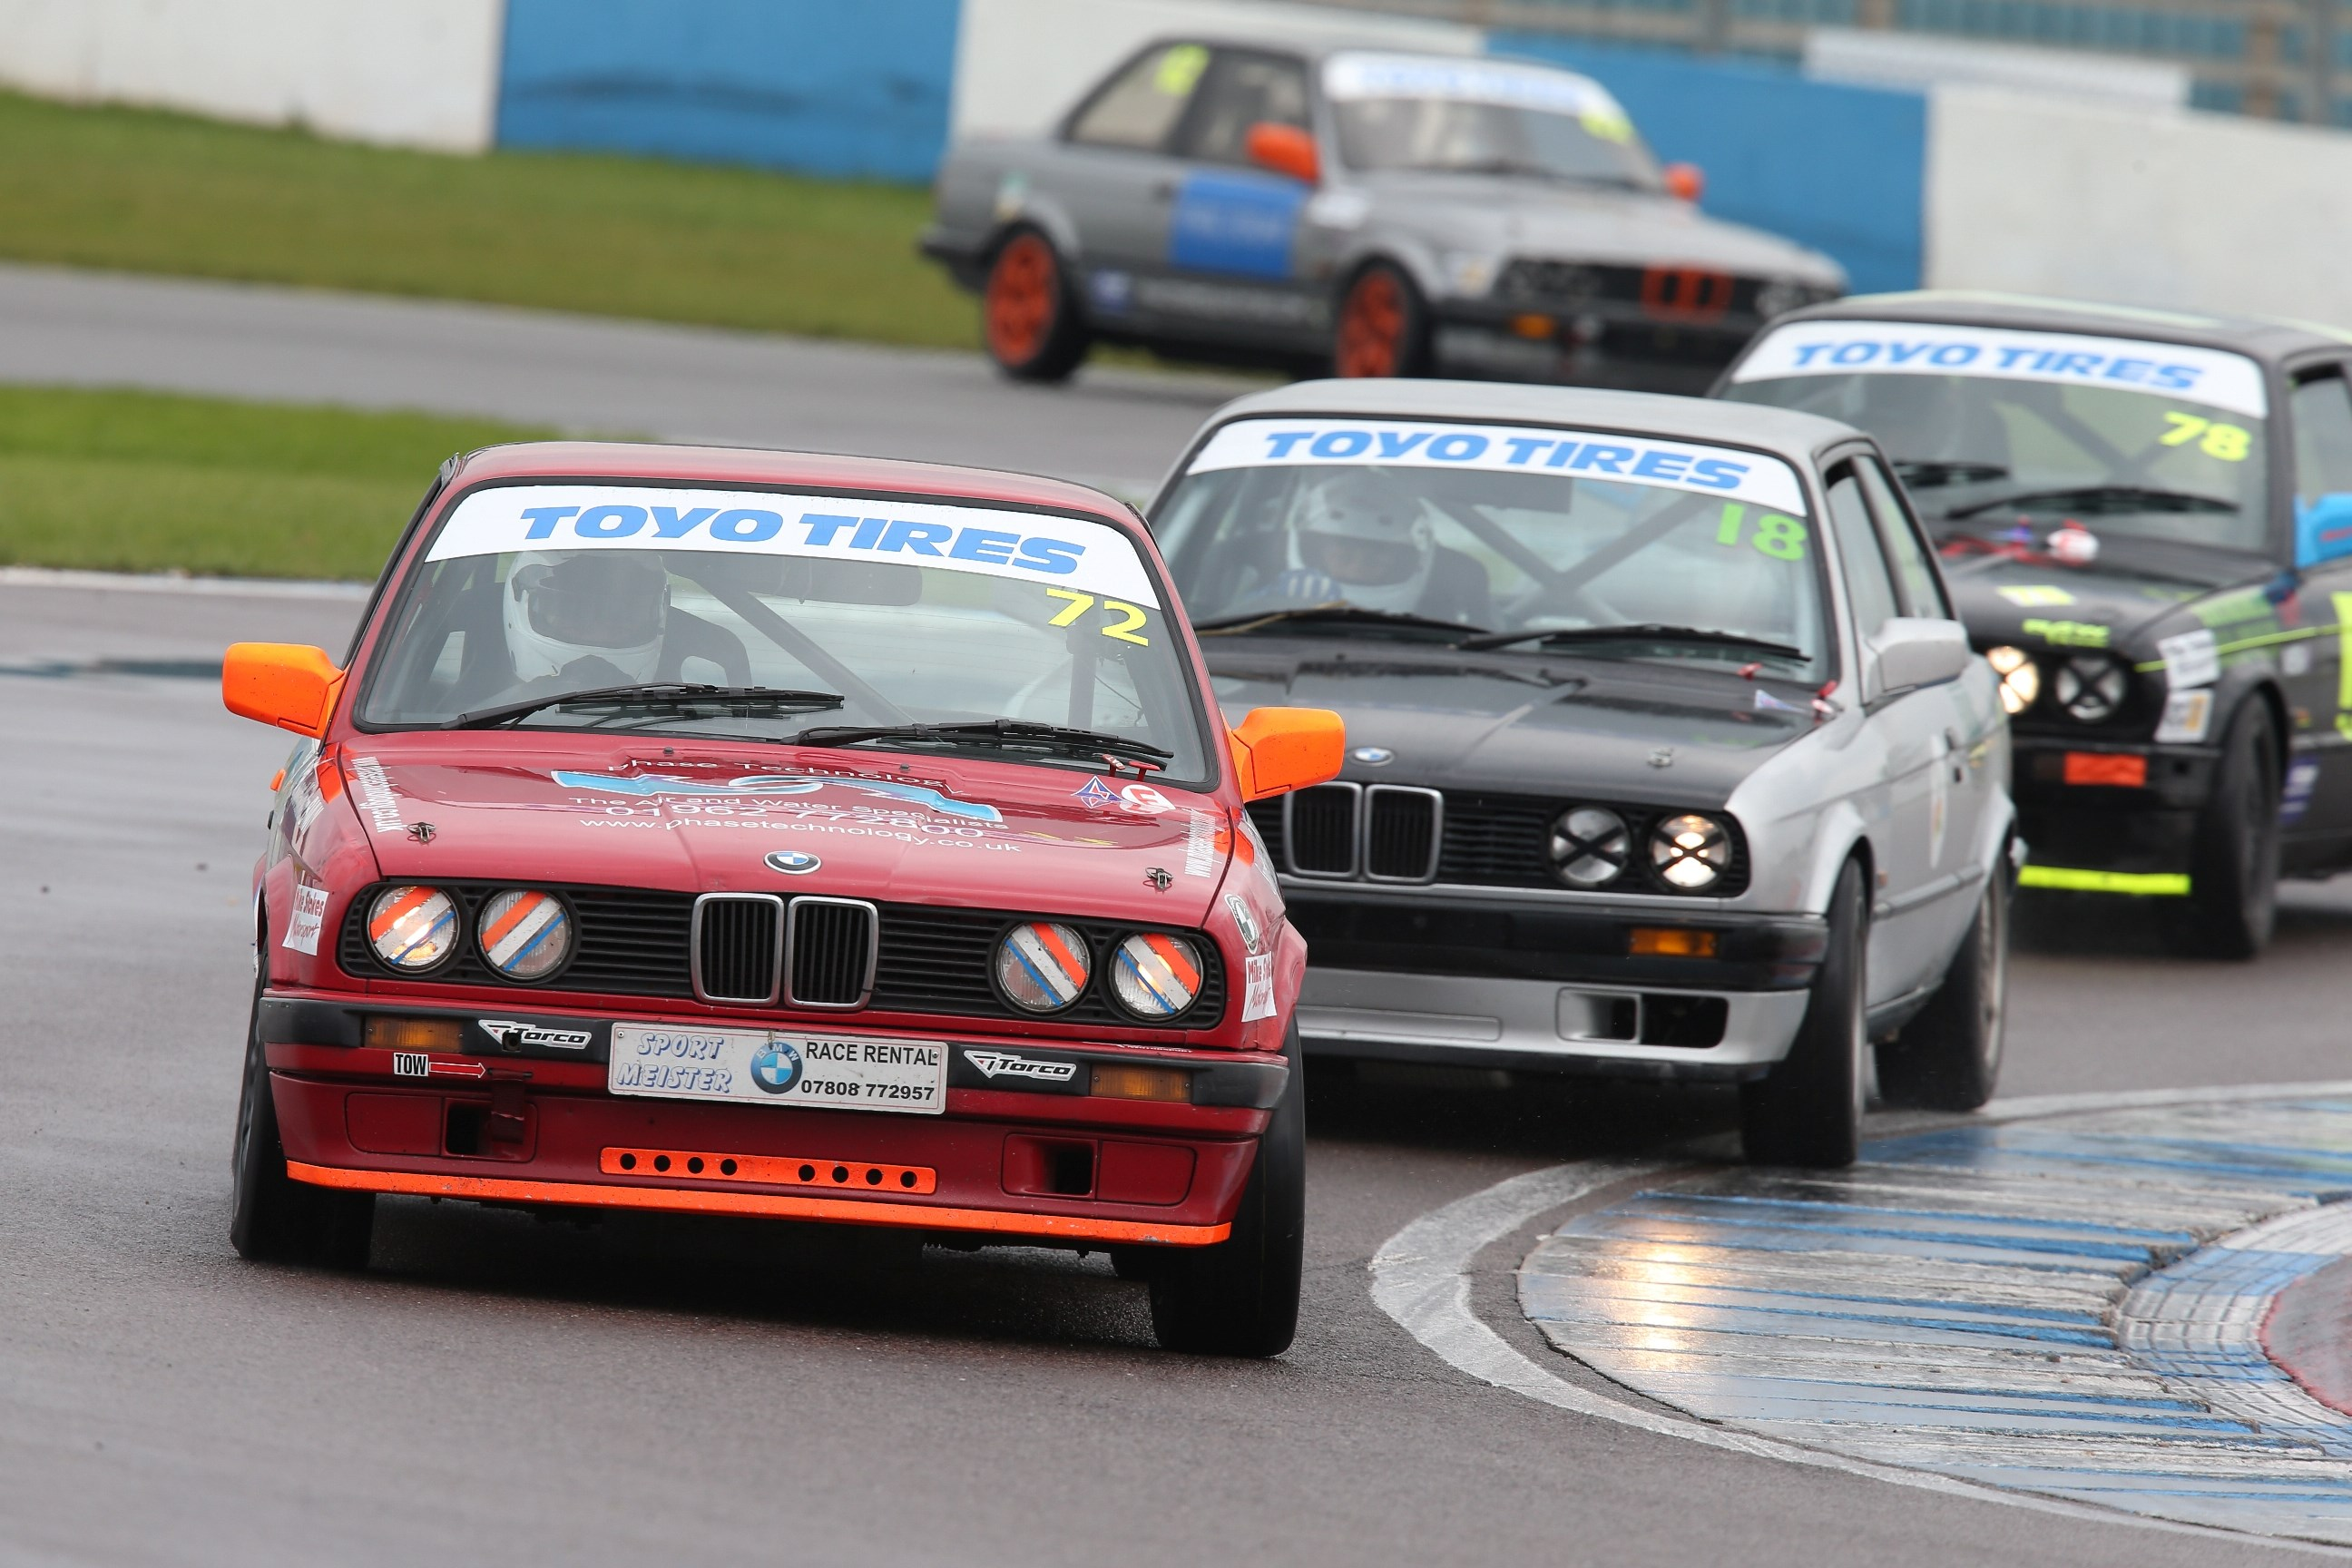 MSVR News - MSVR heads to Snetterton for Championship Deciders